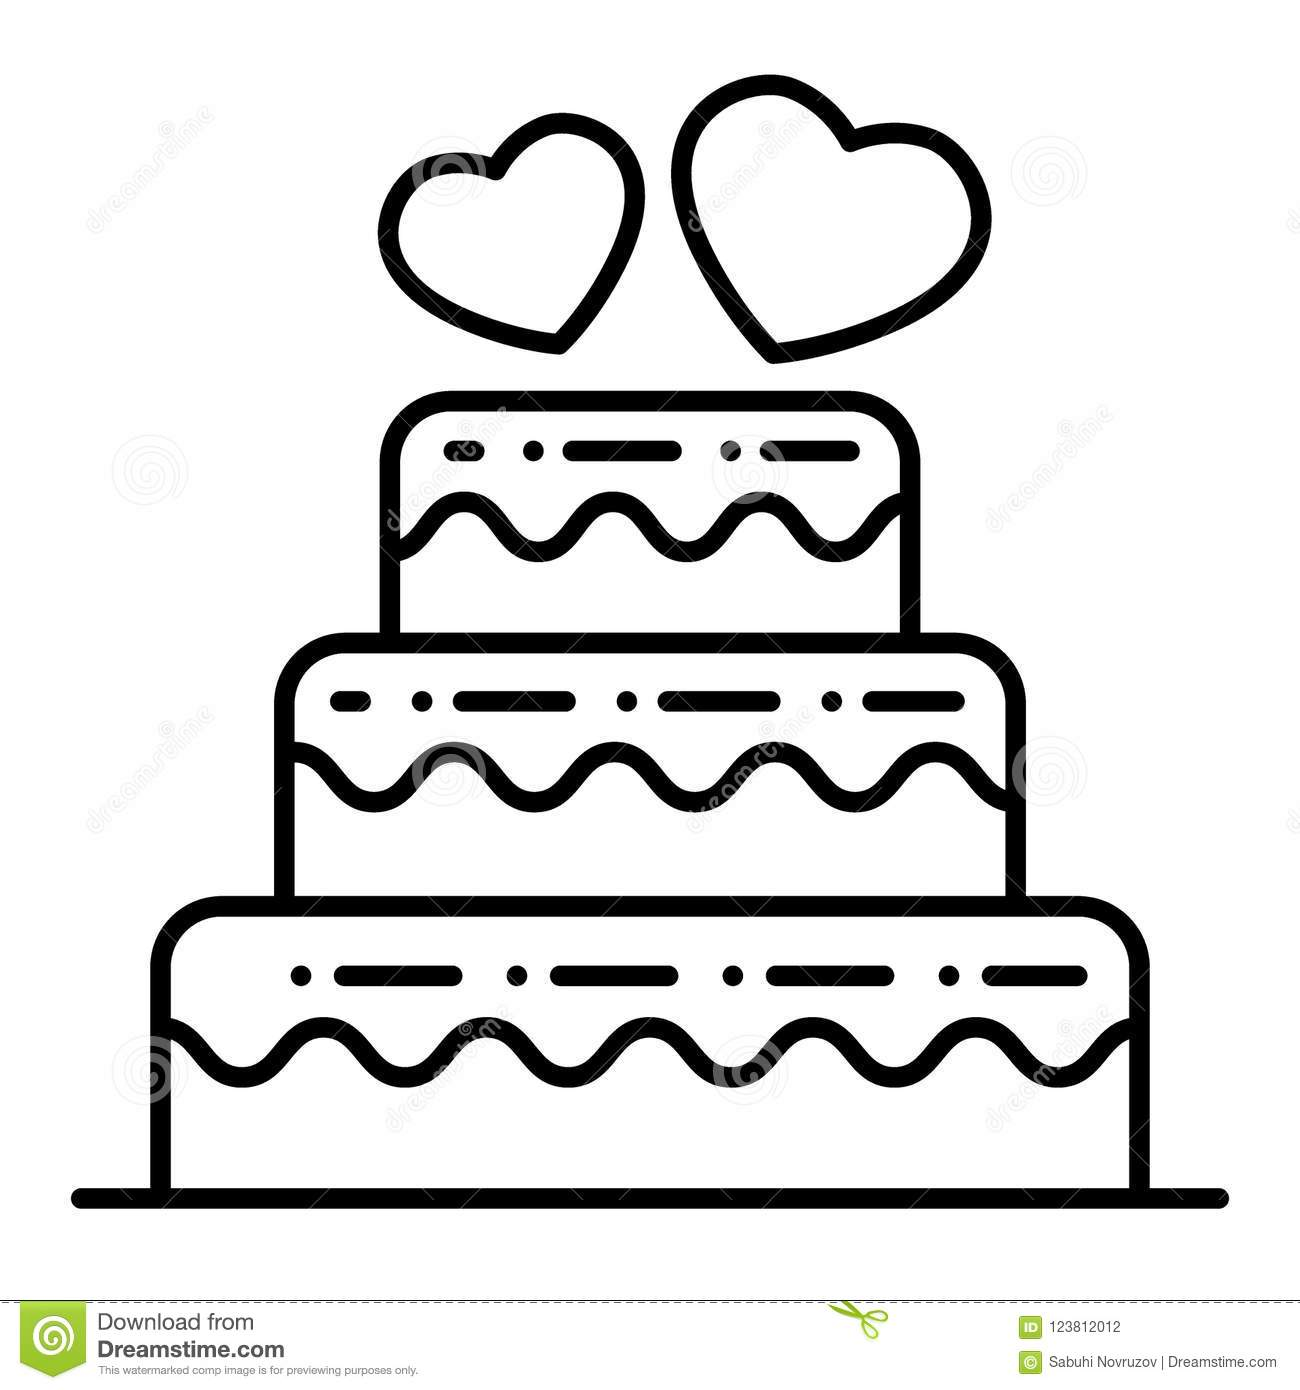 Thumbs Dreamstime Com Z Layered Wedding Cake Thin